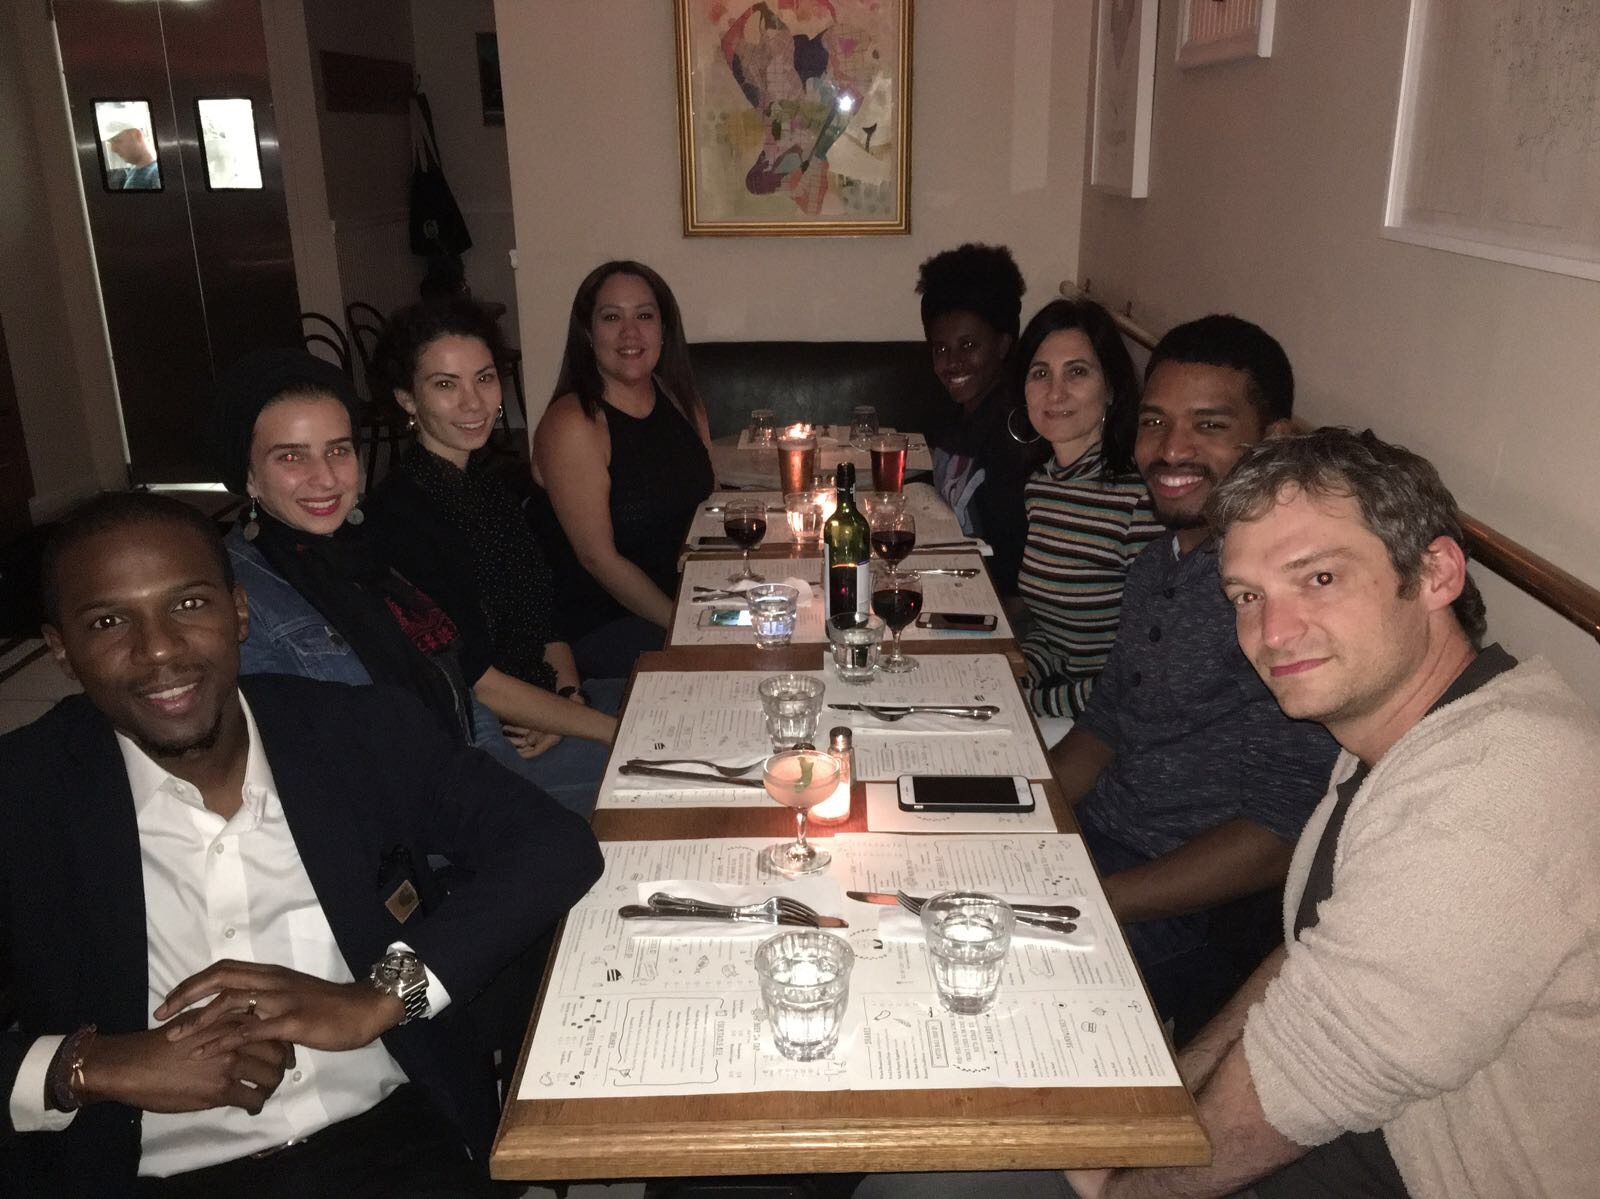 Eight people seated at a table at a restaurant for dinner